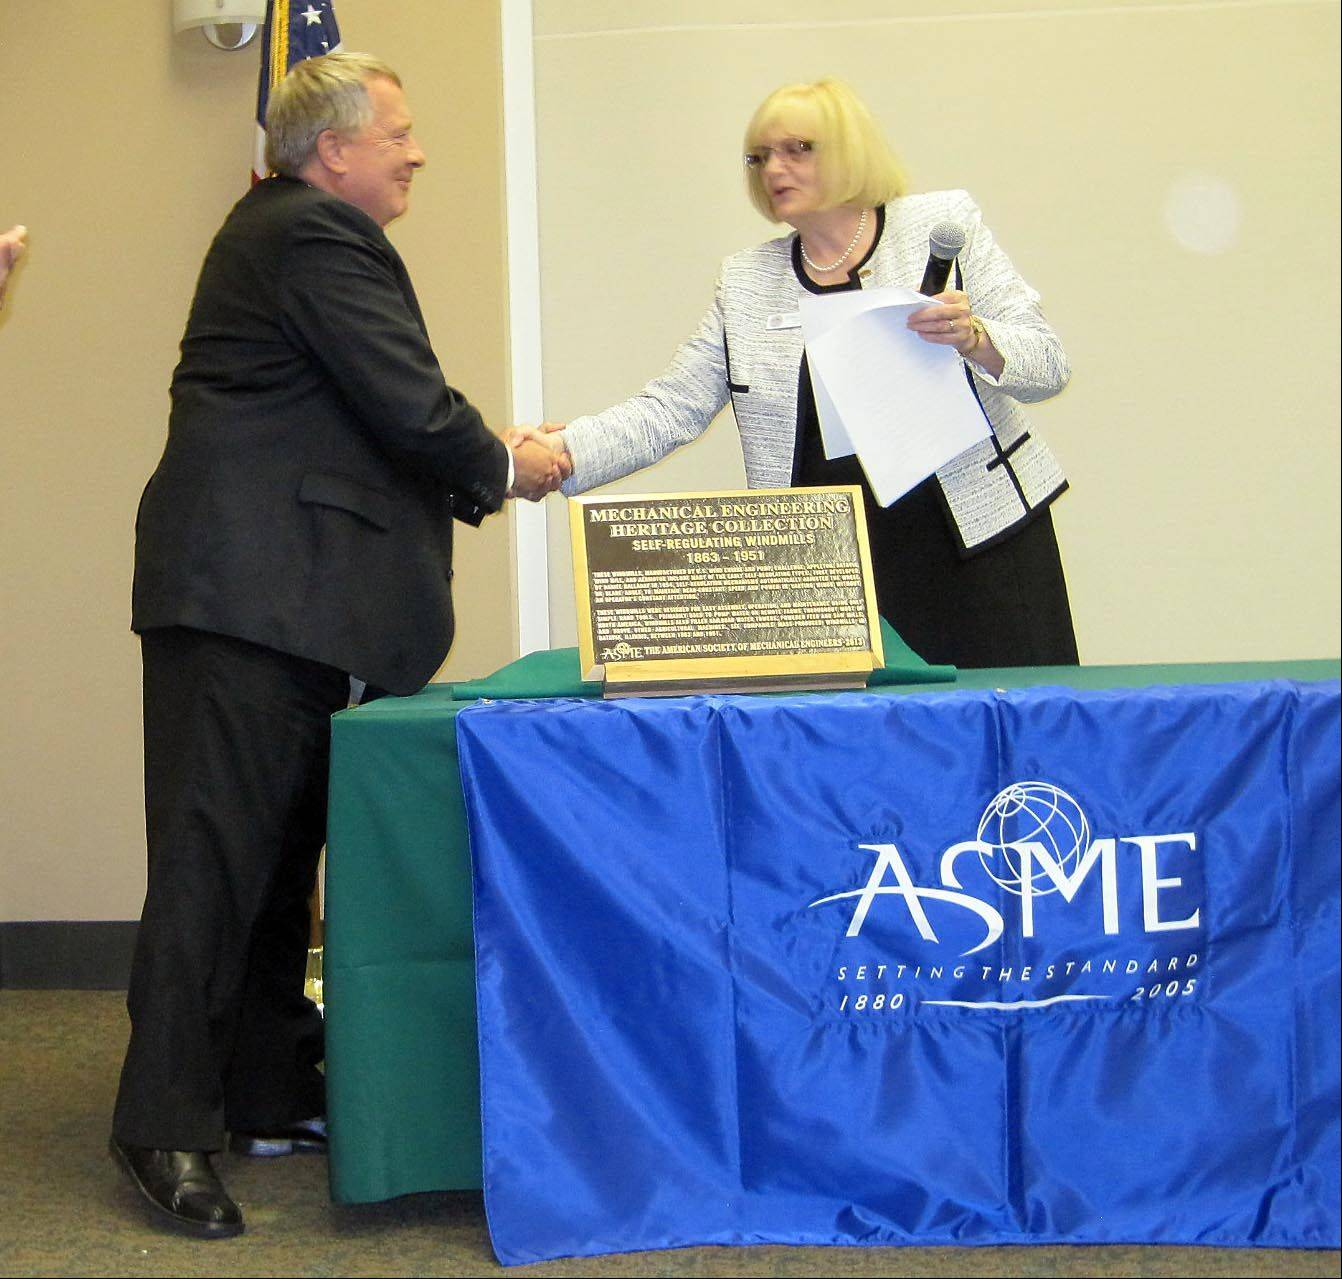 Batavia Mayor Jeff Schielke, left, and Victoria Rockwell, past president of the American Society of Mechanical Engineers, shake hands after the unveiling of a commemorative plaque designating Batavia's windmills as an engineering landmark in a ceremony held Saturday at the Batavia Public Library.